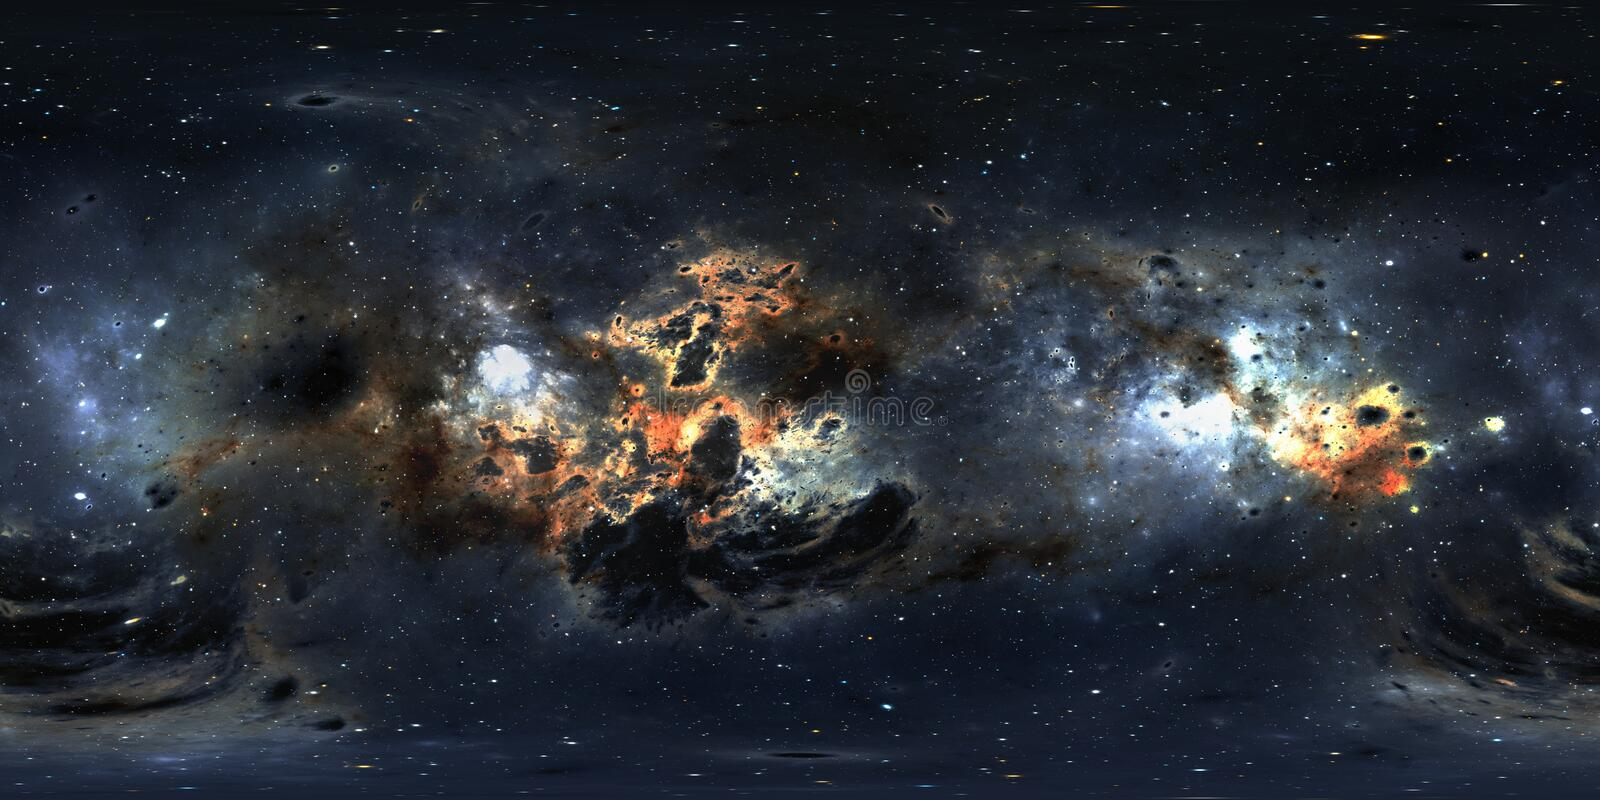 Space background with dust nebula and stars. Panorama, environment 360 HDRI map. Equirectangular projection, spherical panorama. 3d illustration vector illustration